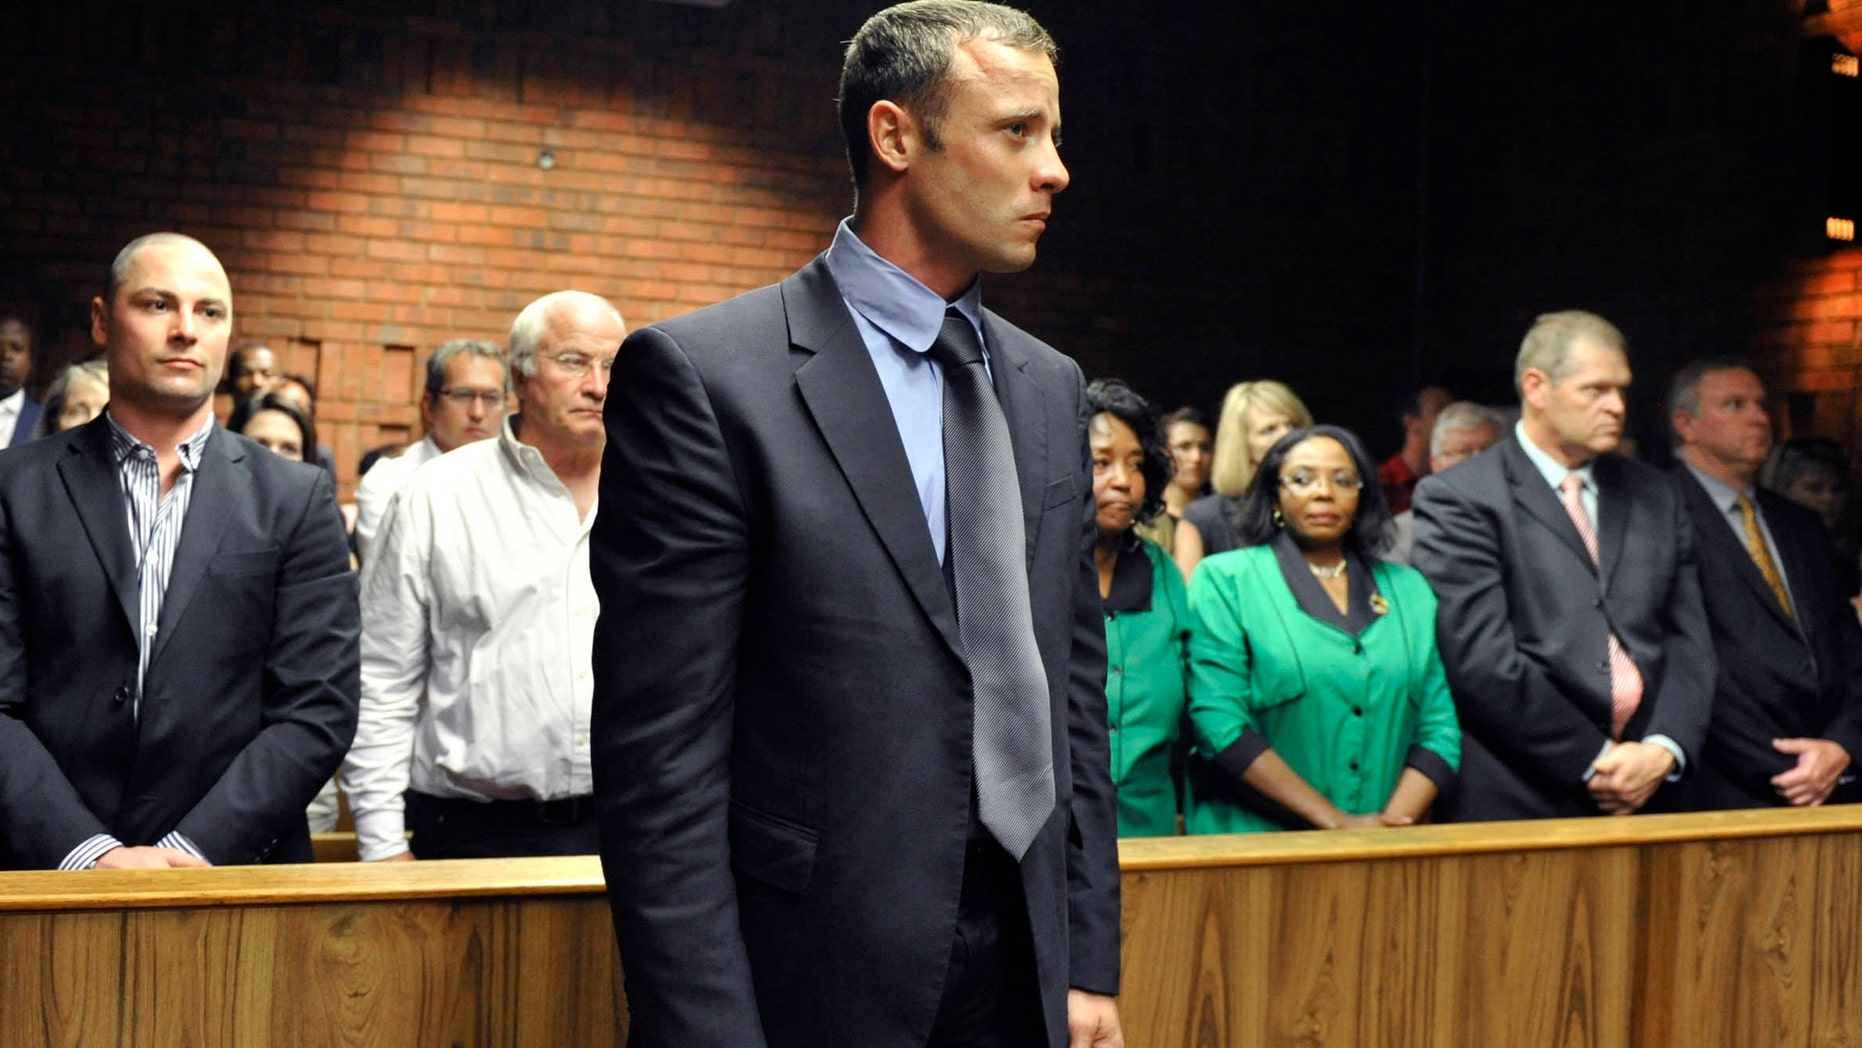 Olympian Oscar Pistorius stands following his bail hearing in Pretoria, South Africa, Tuesday, Feb. 19, 2013. Pistorius fired into the door of a small bathroom where his girlfriend was cowering after a shouting match on Valentine's Day, hitting her three times, a South African prosecutor said Tuesday as he charged the sports icon with premeditated murder. The magistrate ruled that Pistorius faces the harshest bail requirements available in South African law. He did not elaborate before a break was called in the session. (AP Photo)